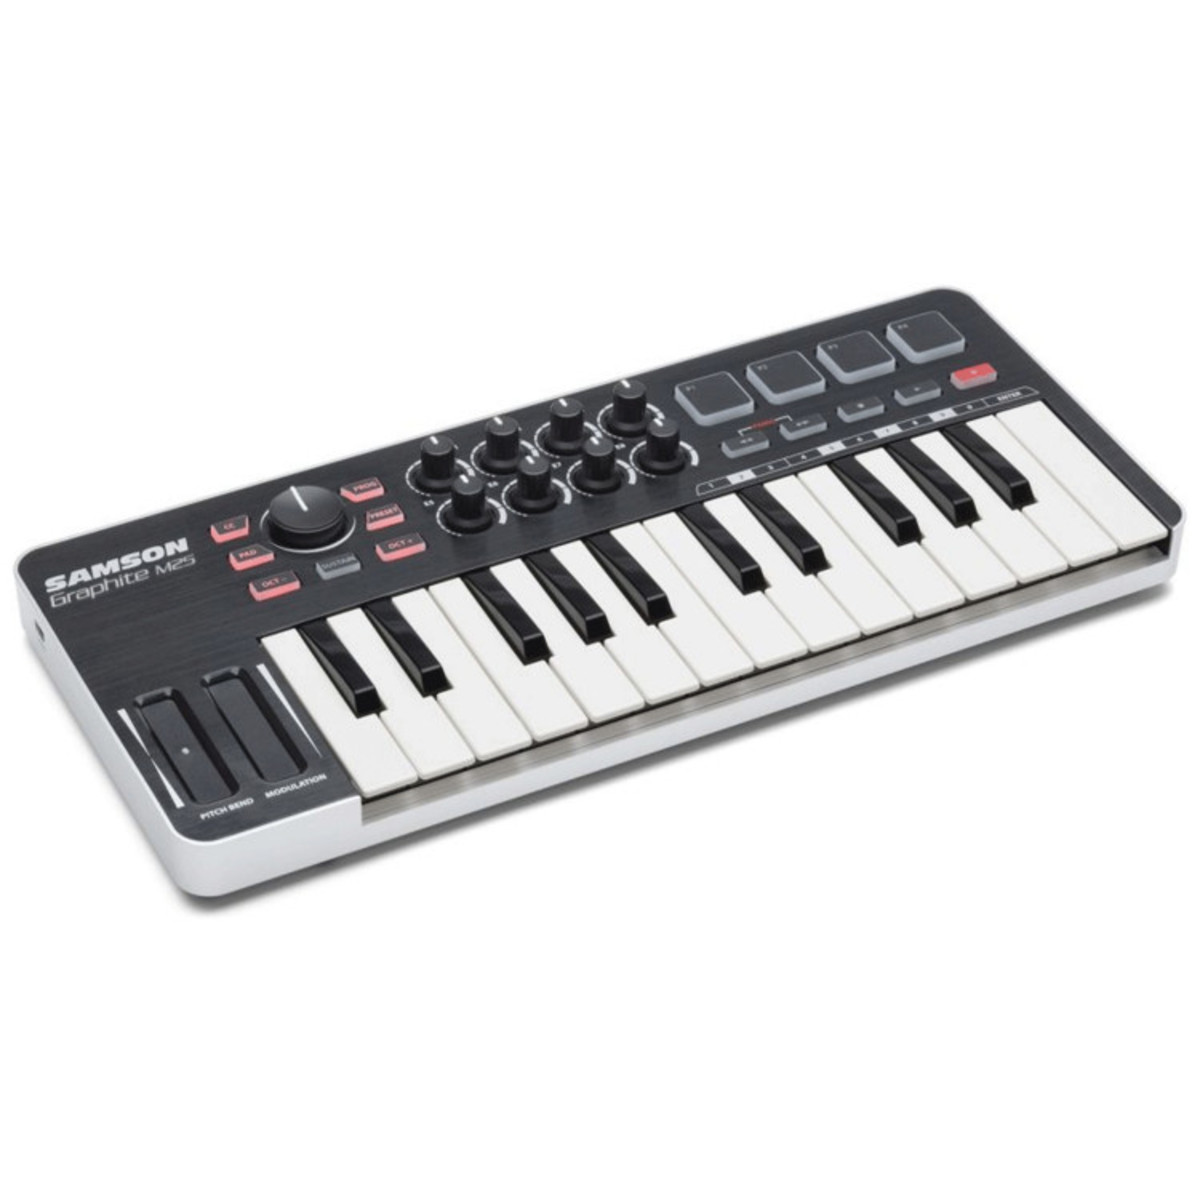 samson graphite 25 note mini usb and ipad midi keyboard nearly new at gear4music. Black Bedroom Furniture Sets. Home Design Ideas